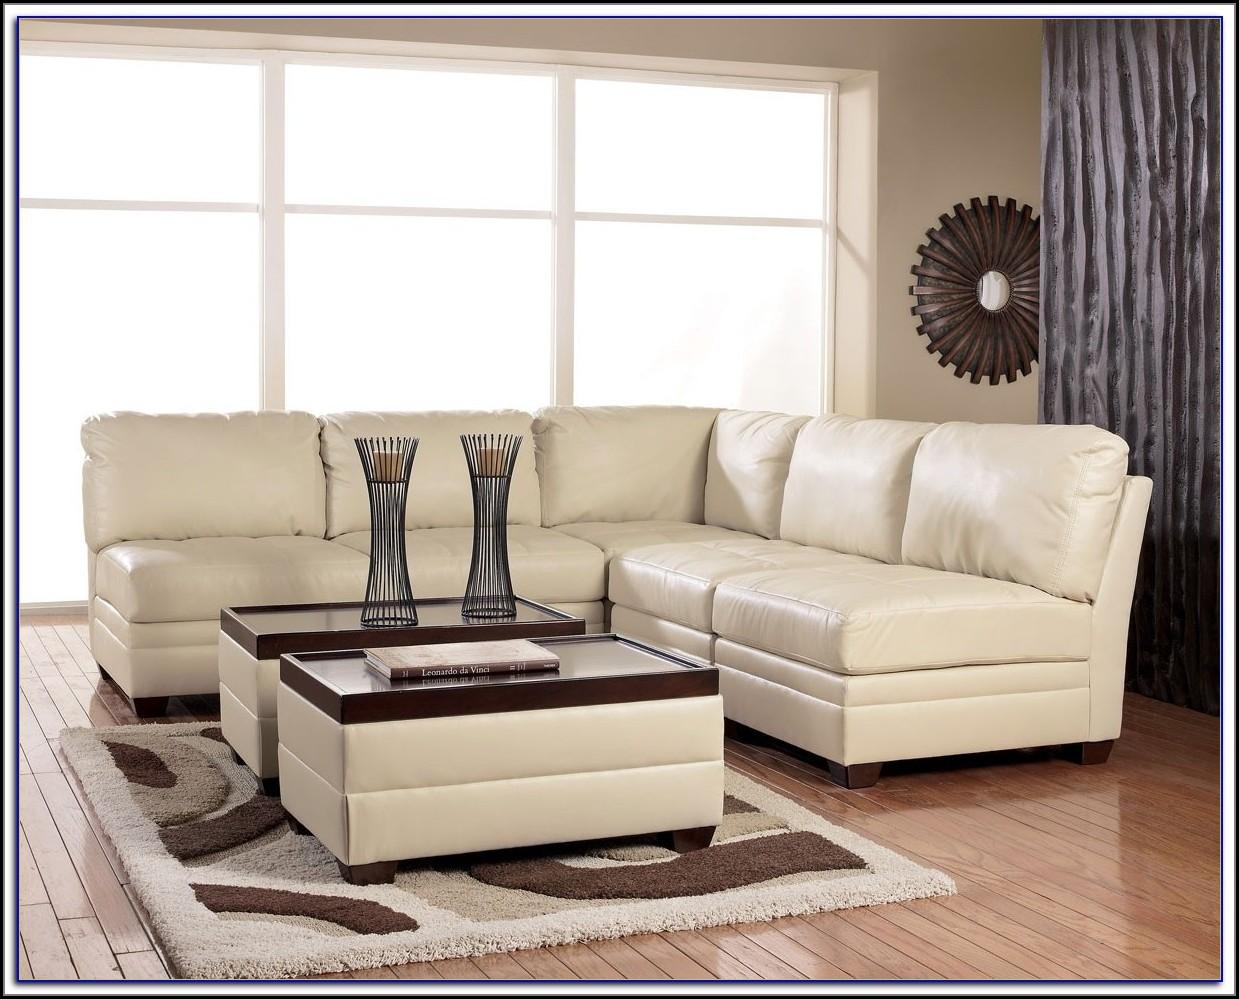 Decorating: Fill Your Living Room With Elegant Ashley Furniture With Regard To Ashley Furniture Grenada Sectional (Image 9 of 15)